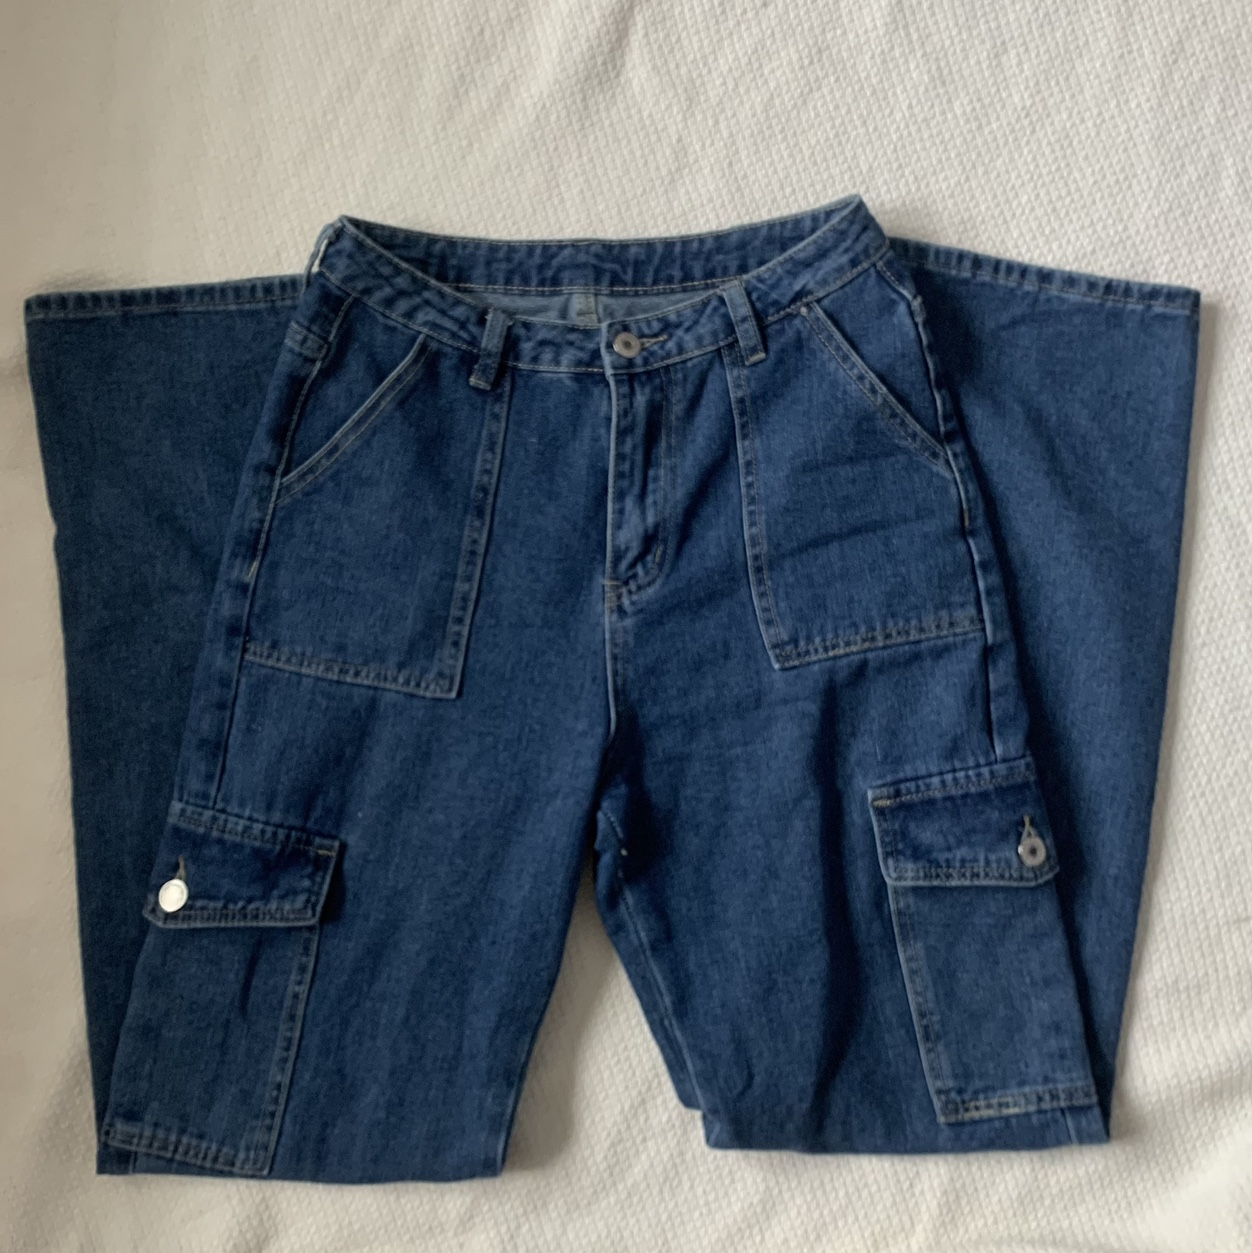 Product Image 1 - shein cargo pants size small